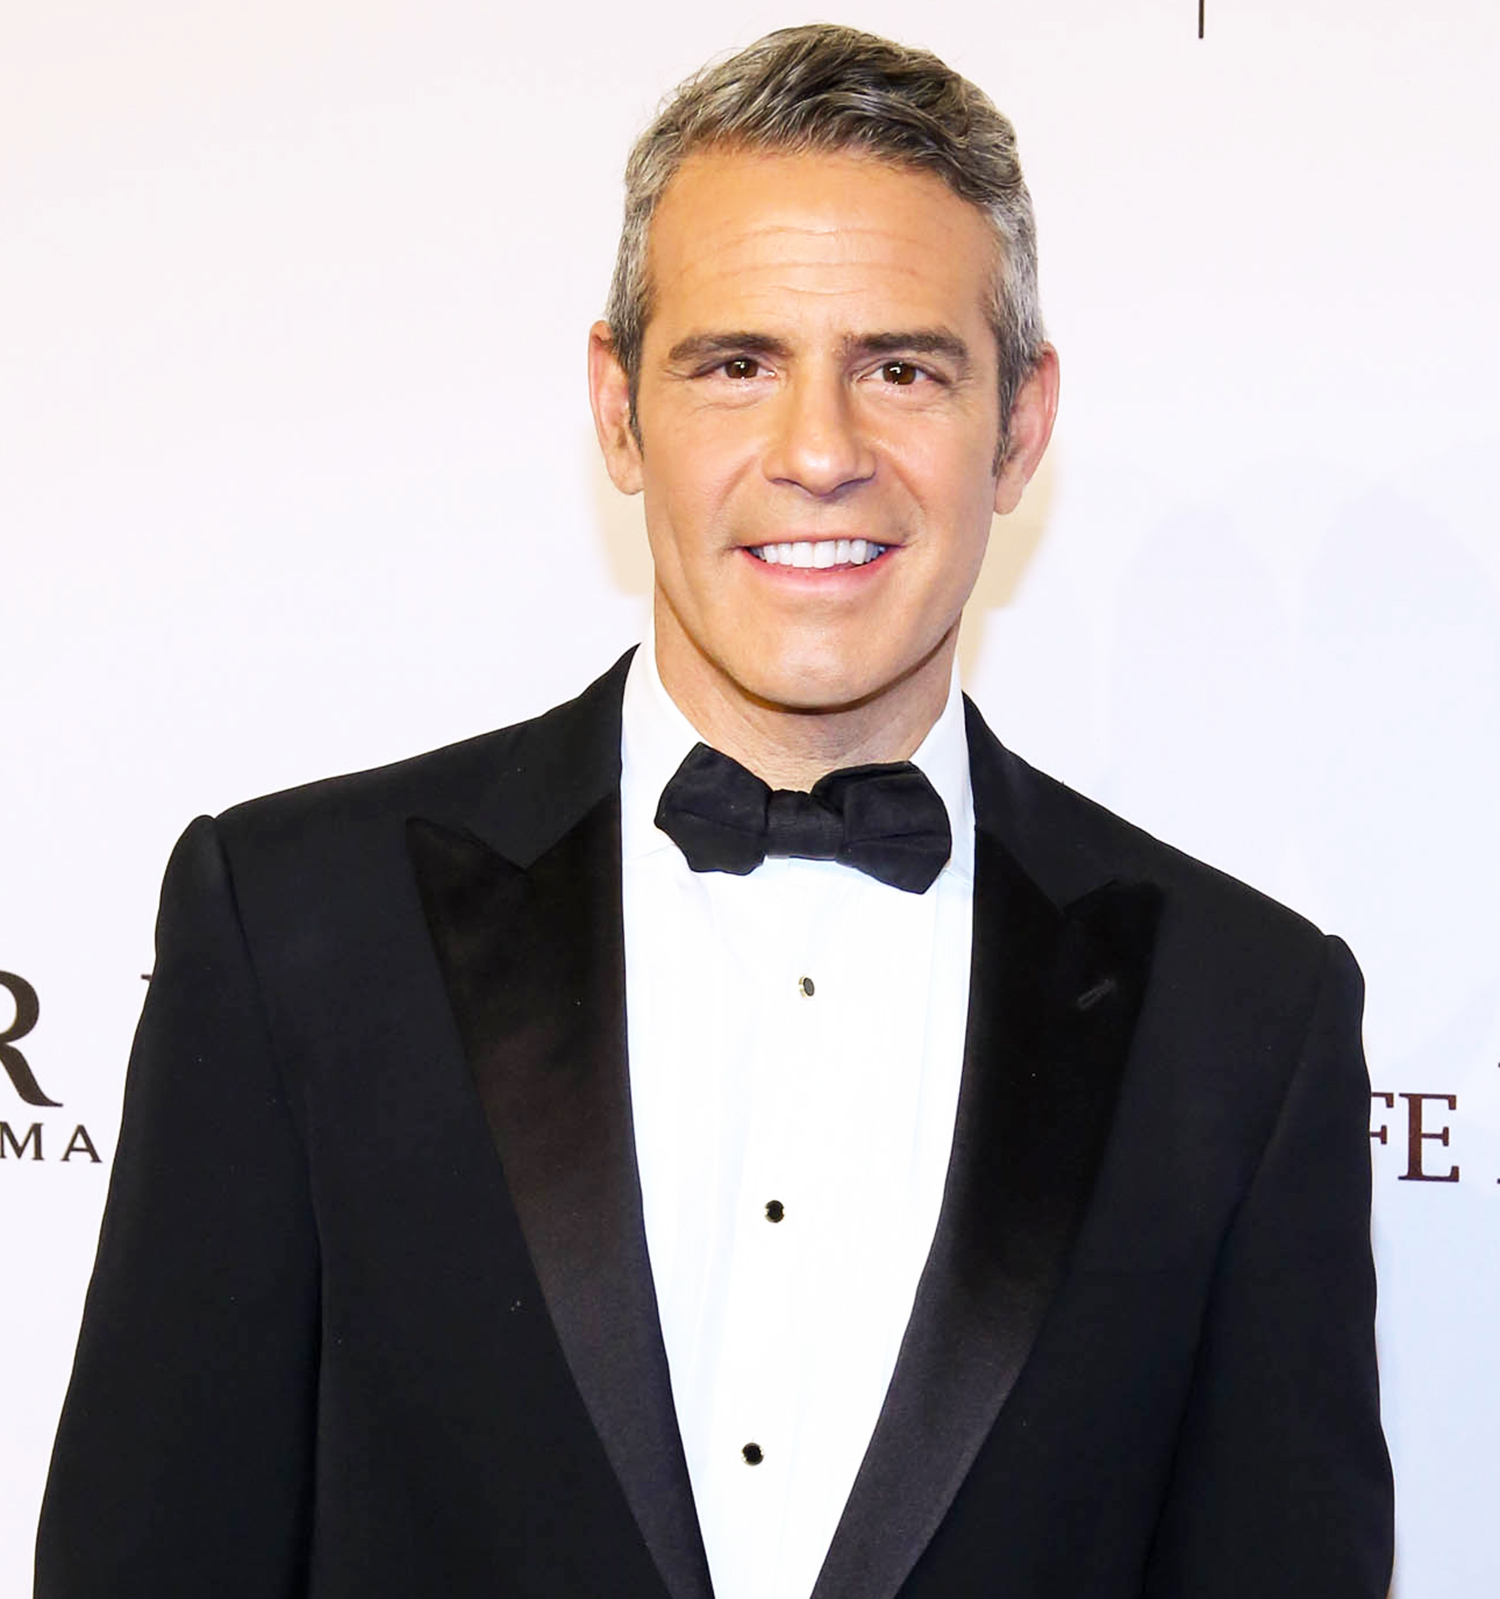 Andy Cohen on November 2, 2016 in New York City.